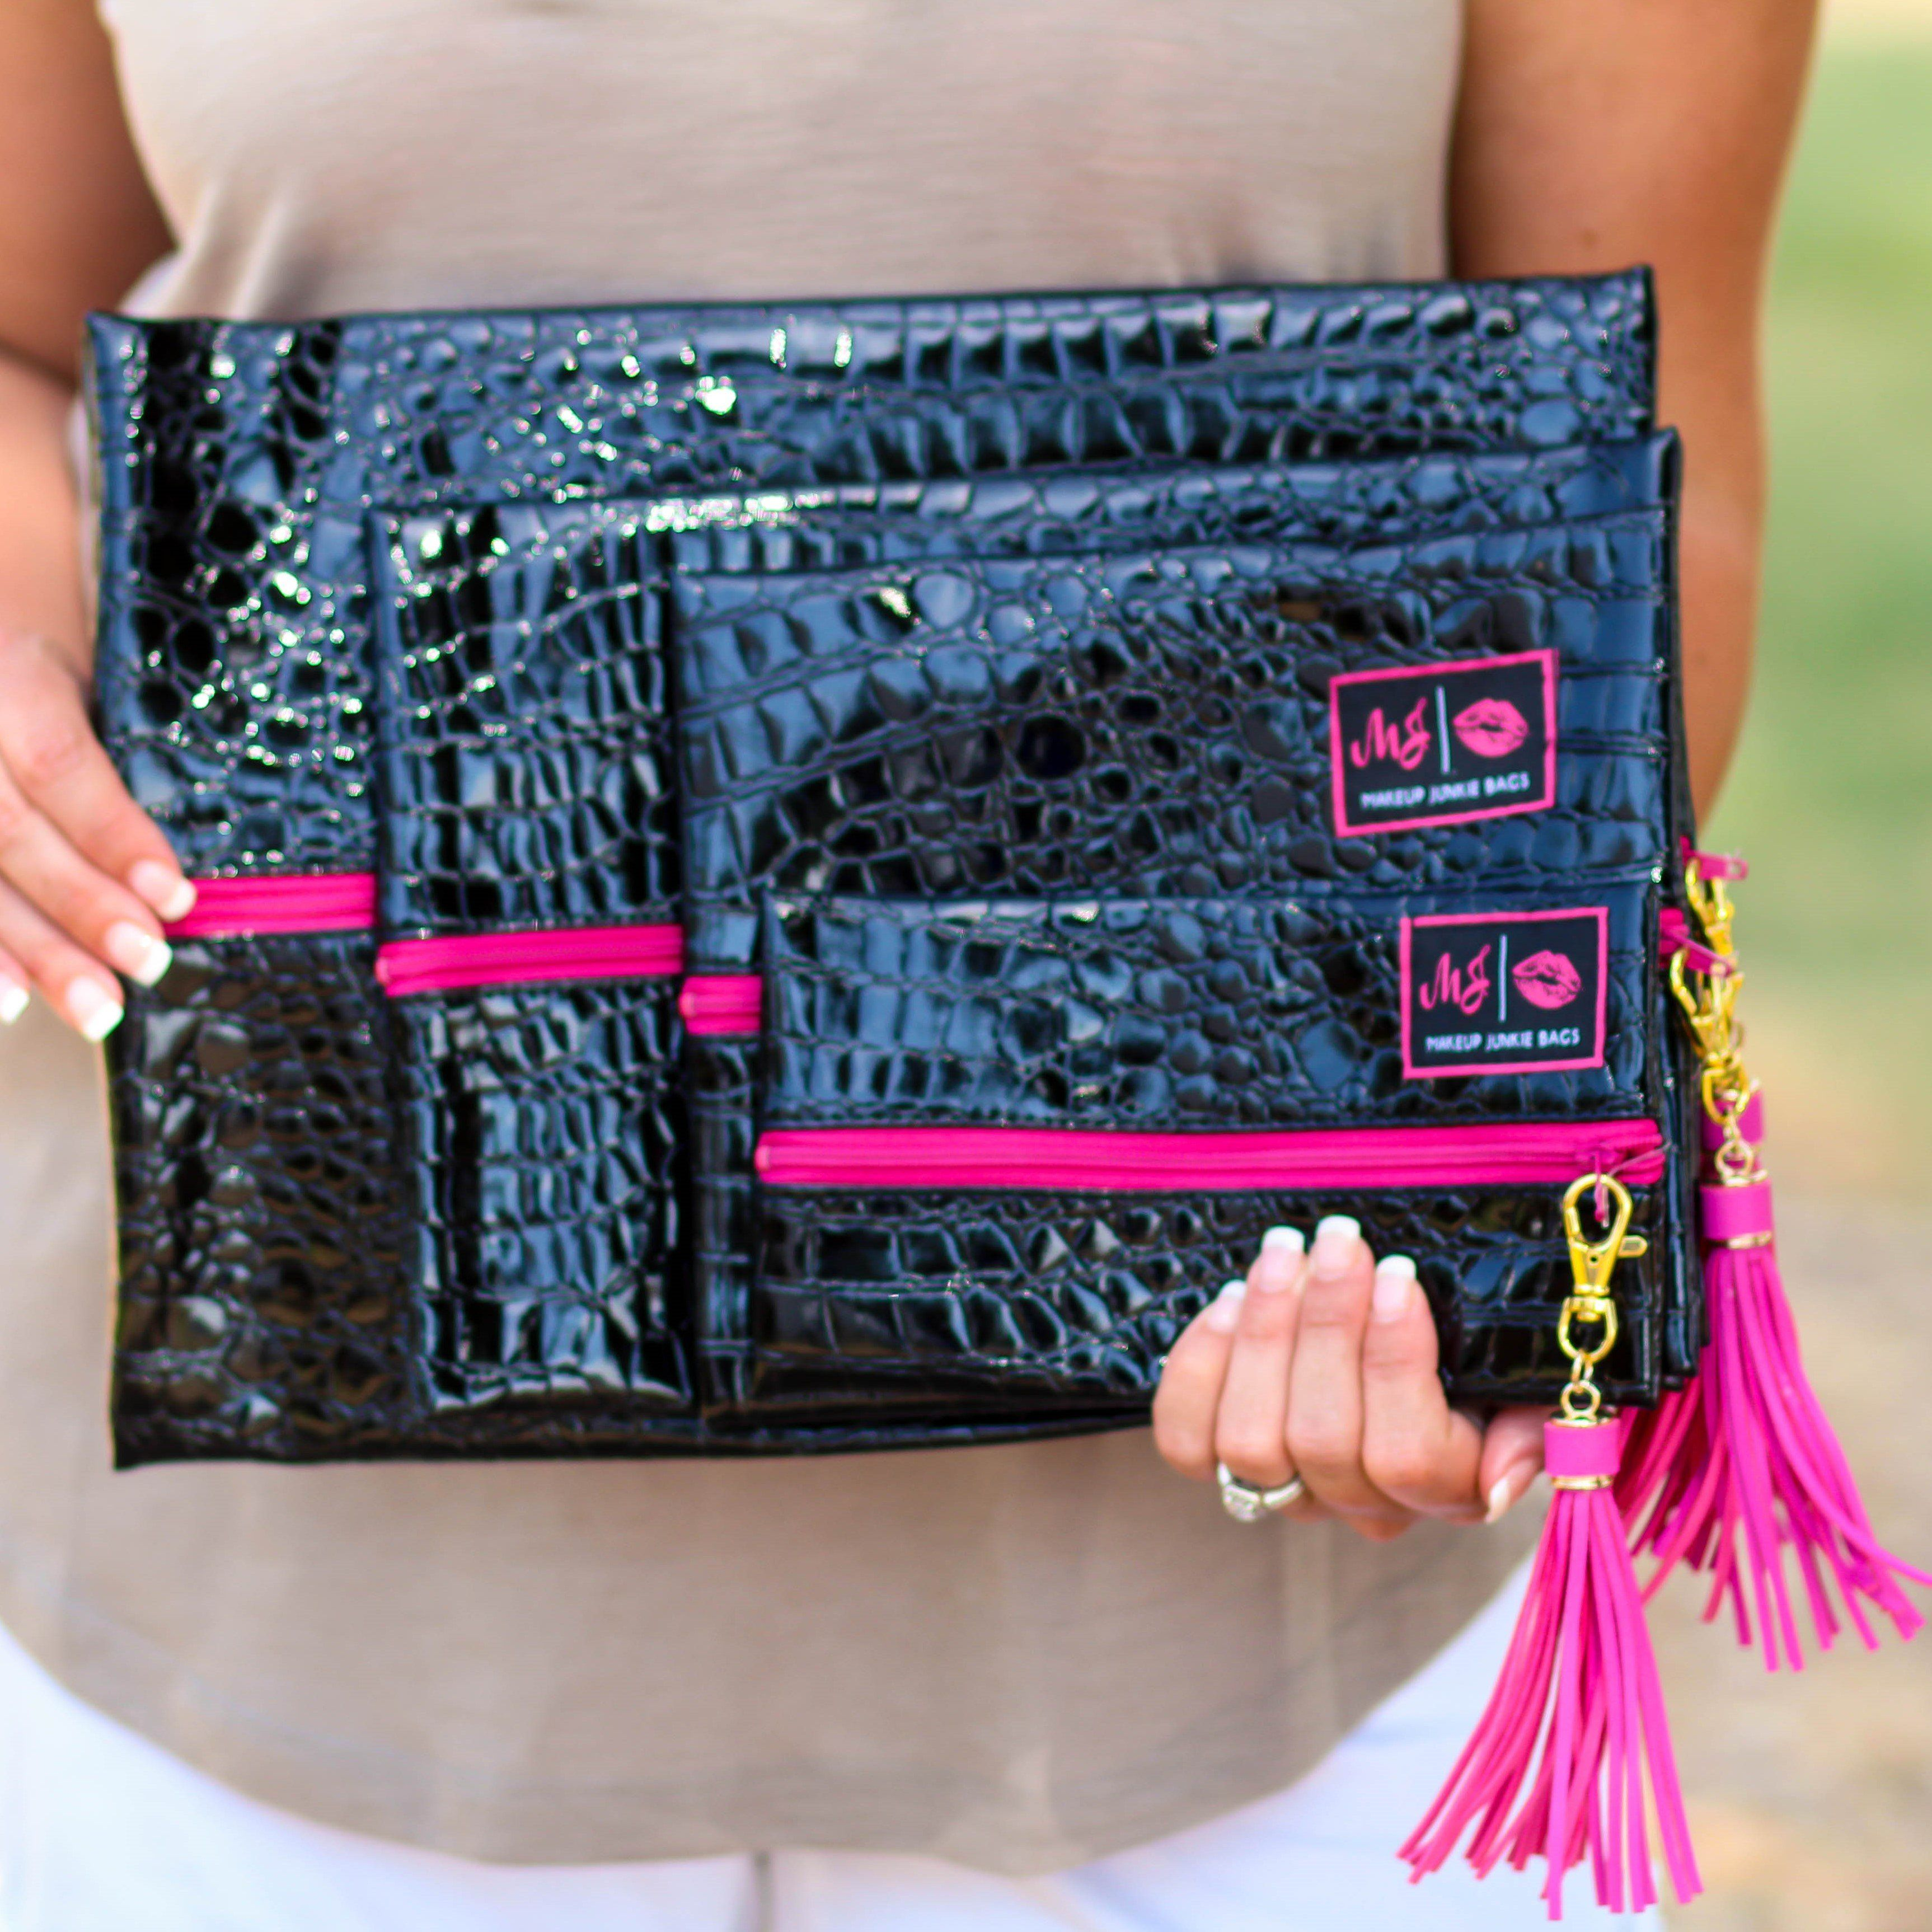 Makeup Junkie Bags in Midnight Pink Fashion, Bags